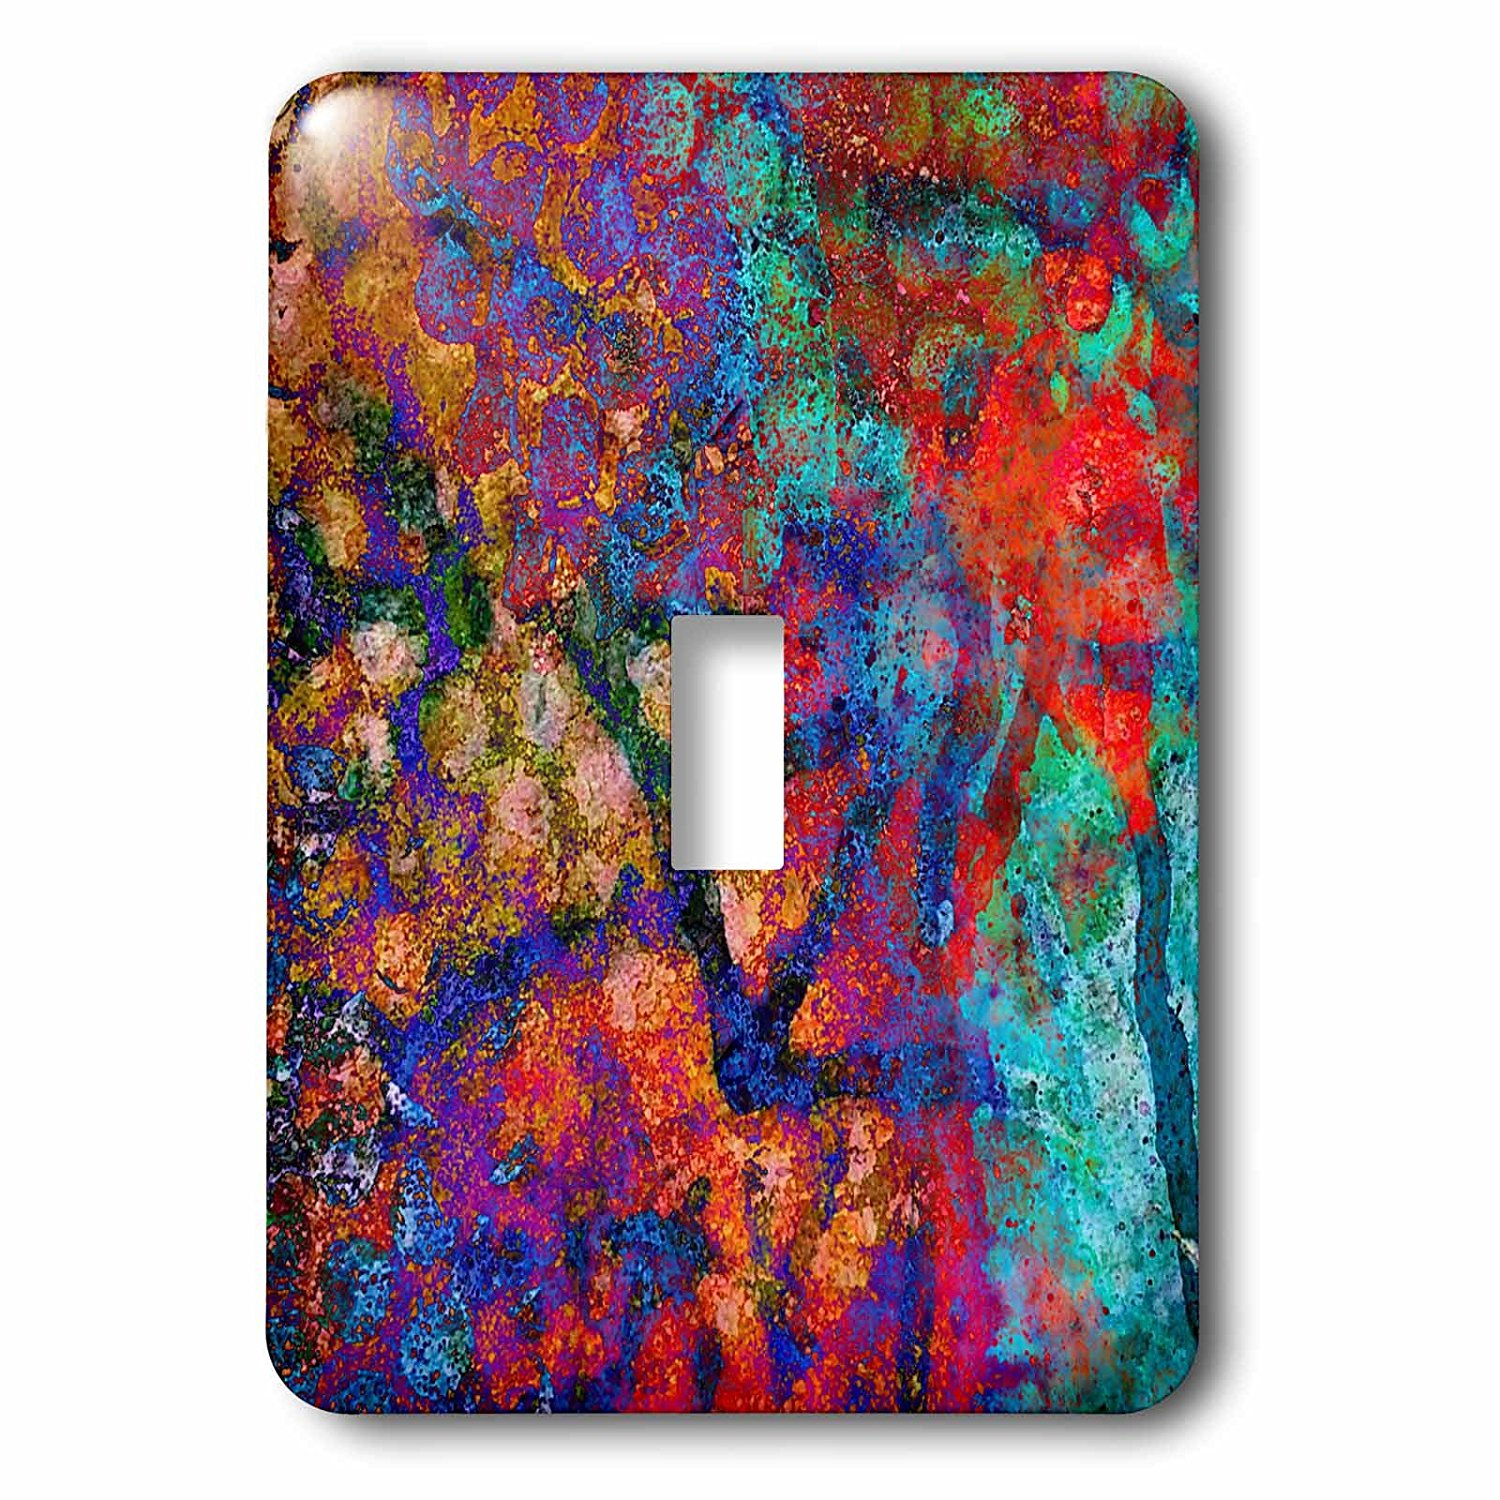 3dRose (1) Single Toggle Switch (lsp_245658_1) Colorful Abstract Snow